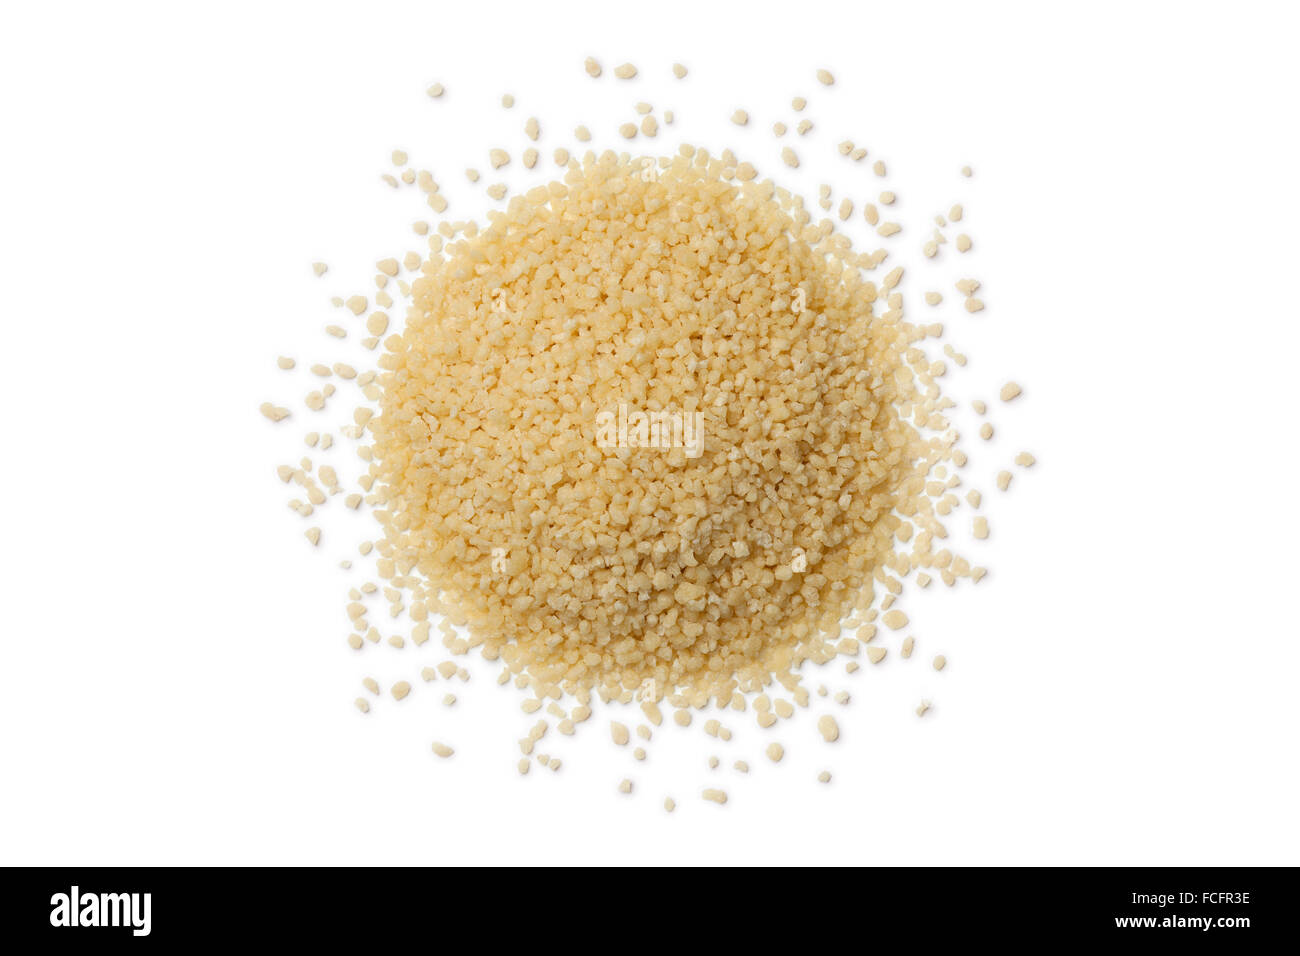 Heap of raw couscous grains on white background - Stock Image